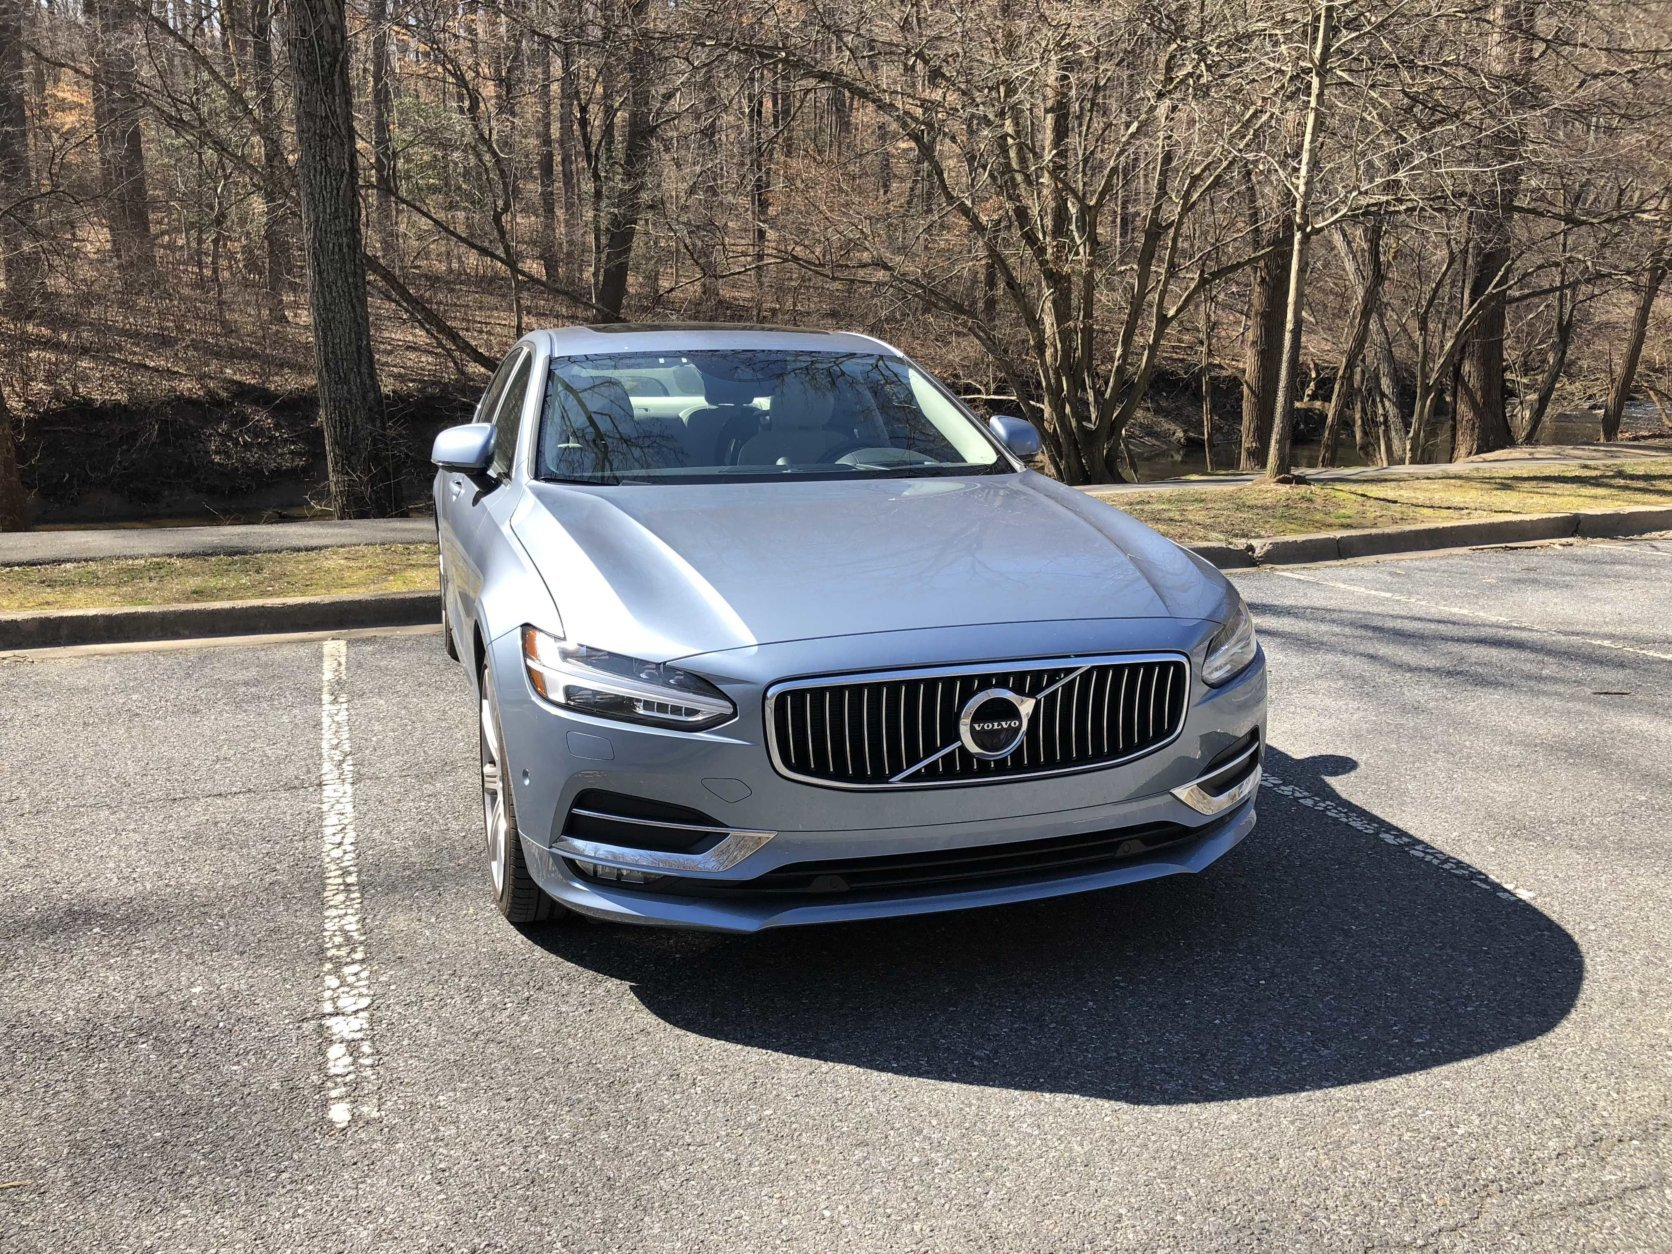 Car Review Volvo Goes From Boring To Head Turner With The Flagship S90 Luxury Sedan Wtop